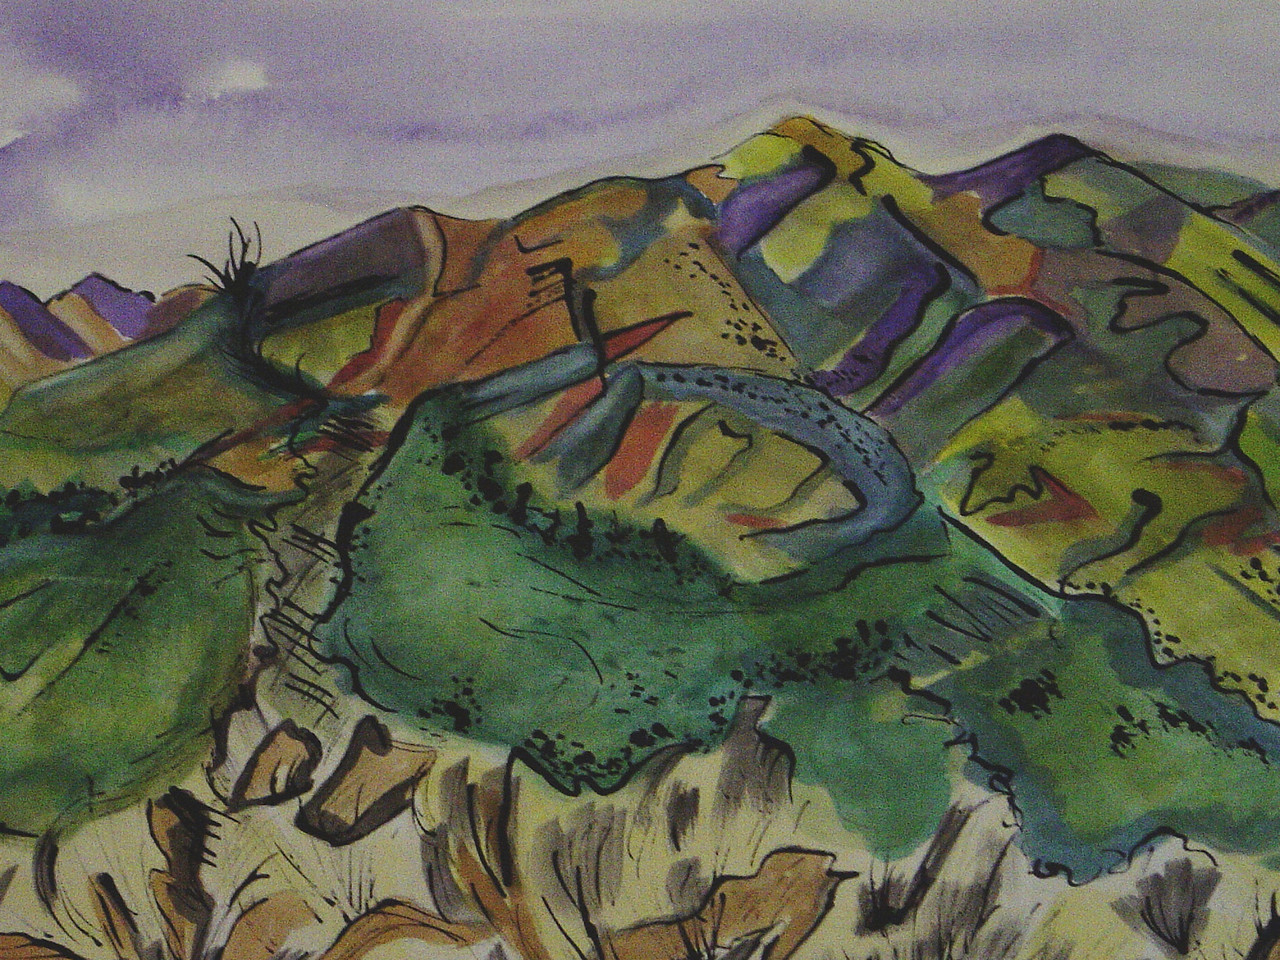 New Mexico Autumn, watercolor, 17.5 x 11.5, 2007 SOLD